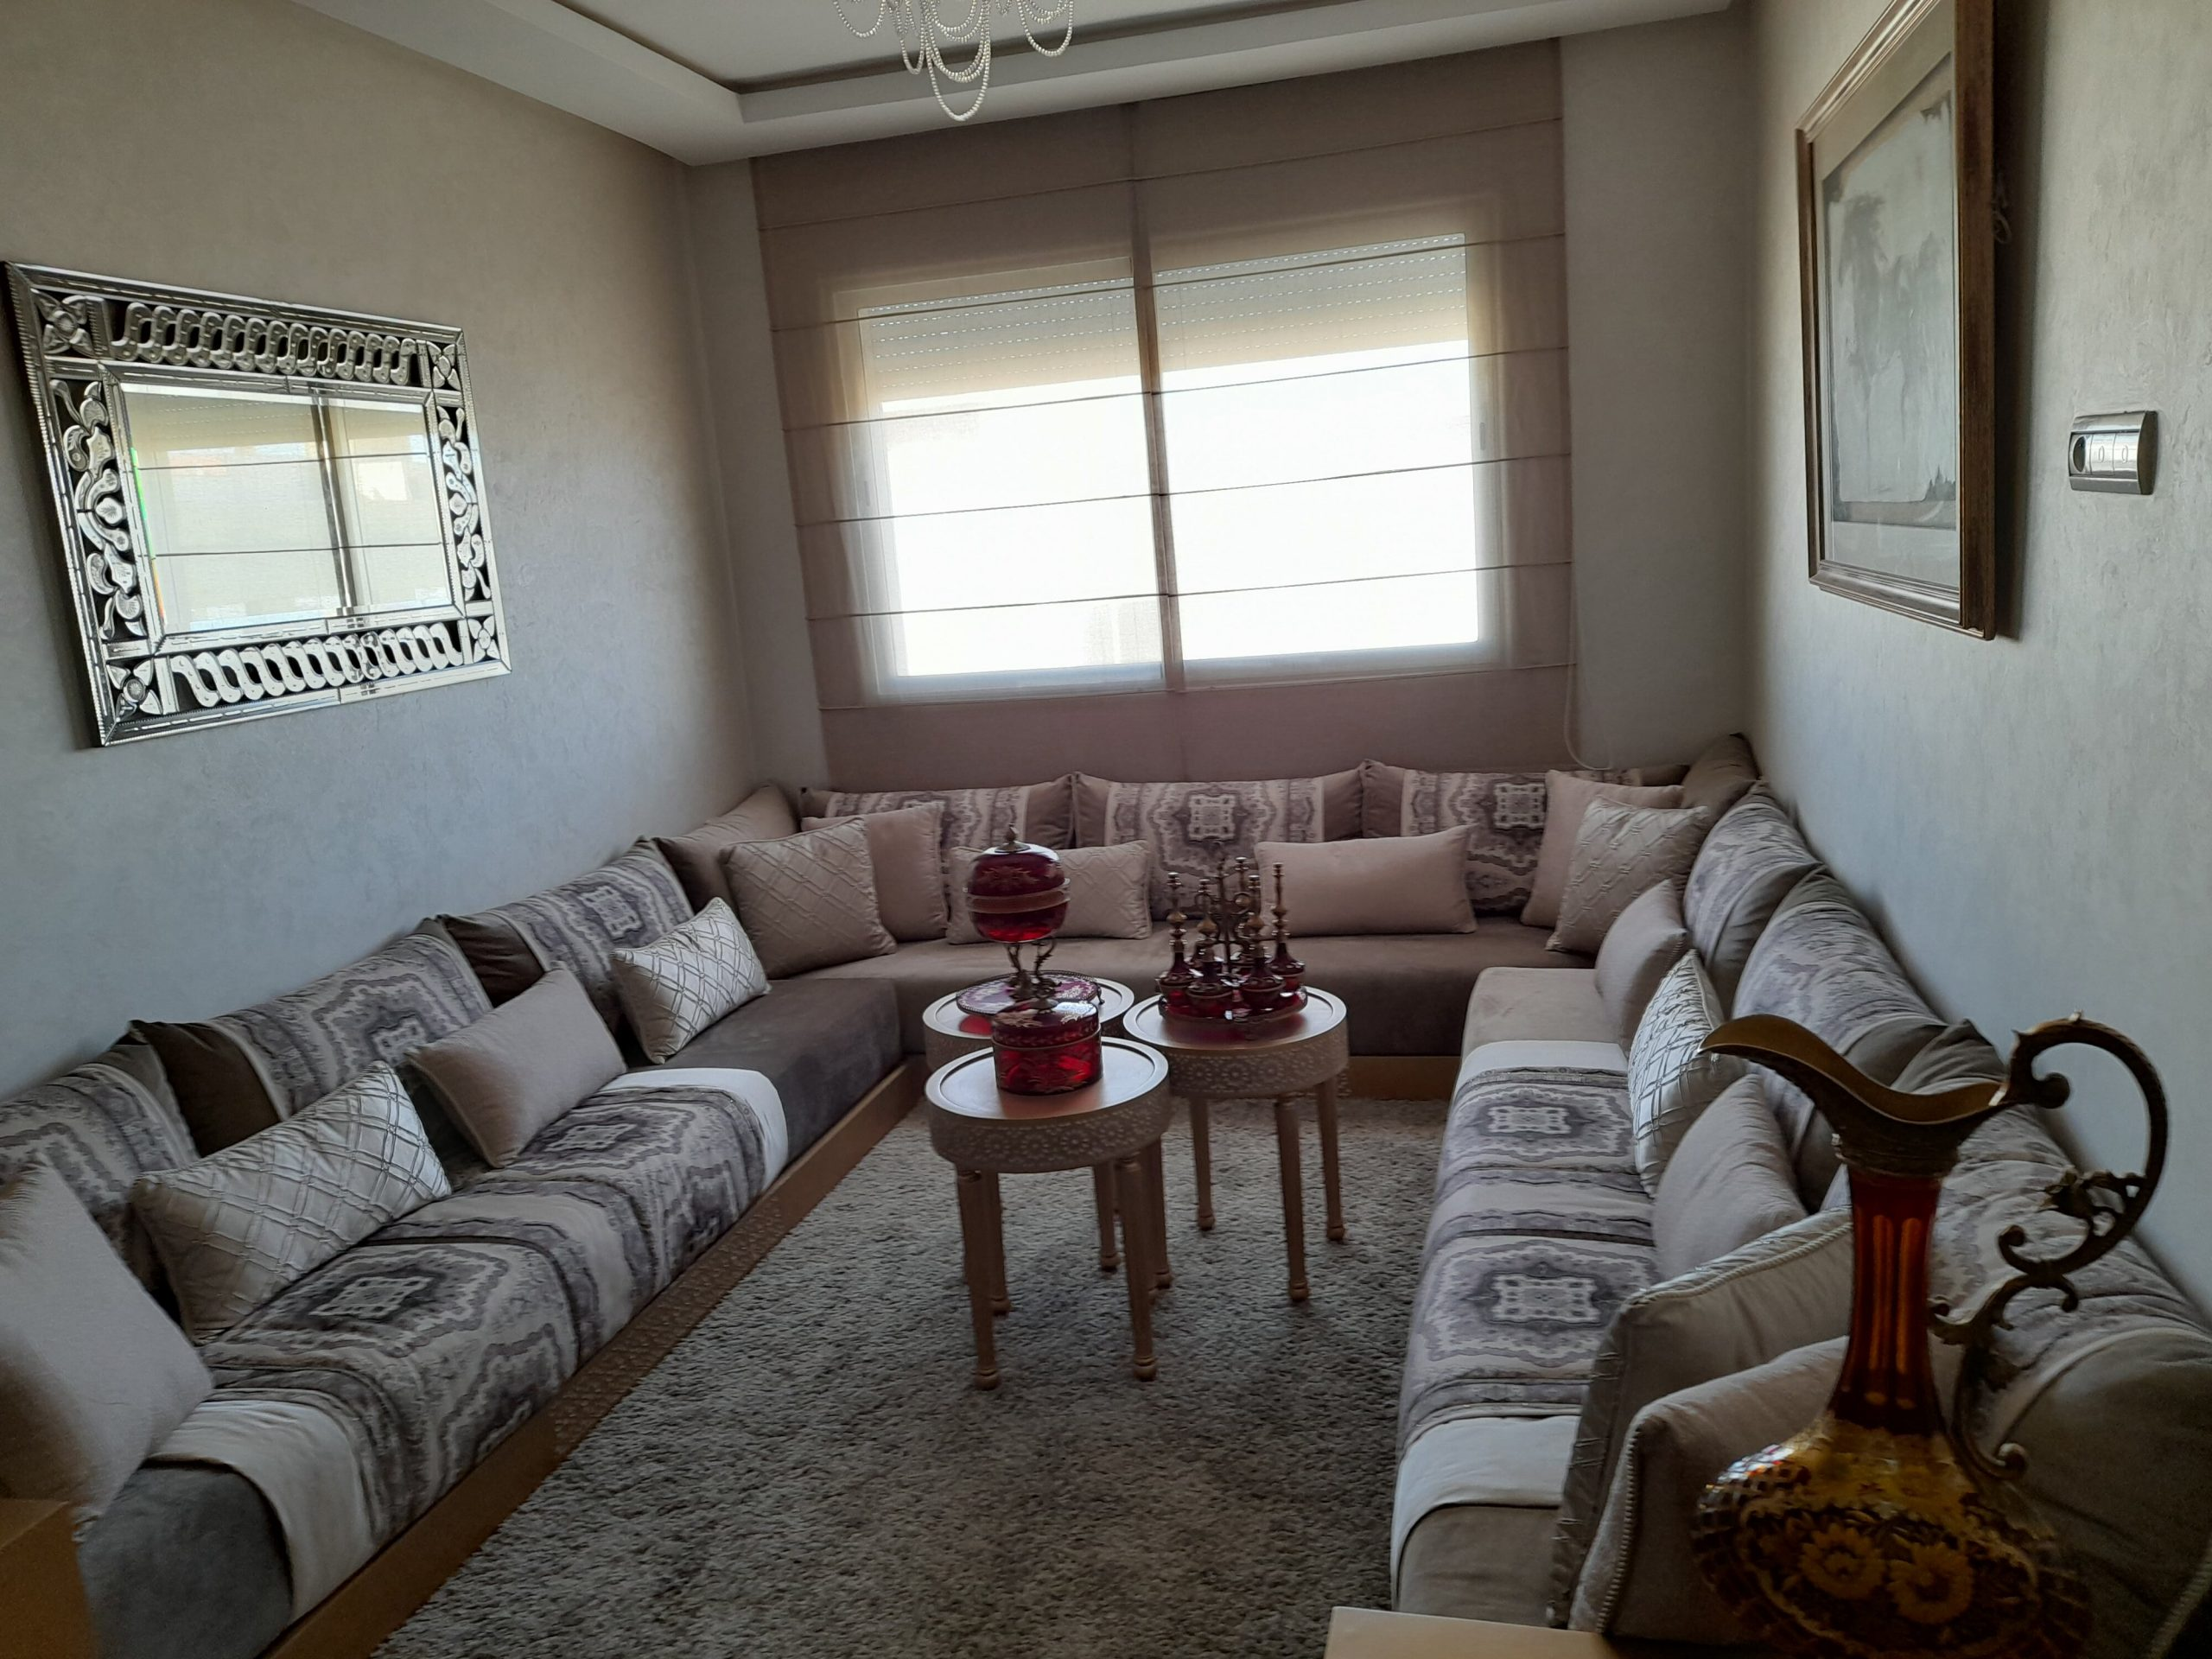 Vente appartements neufs à ABOUAB EL OULFA